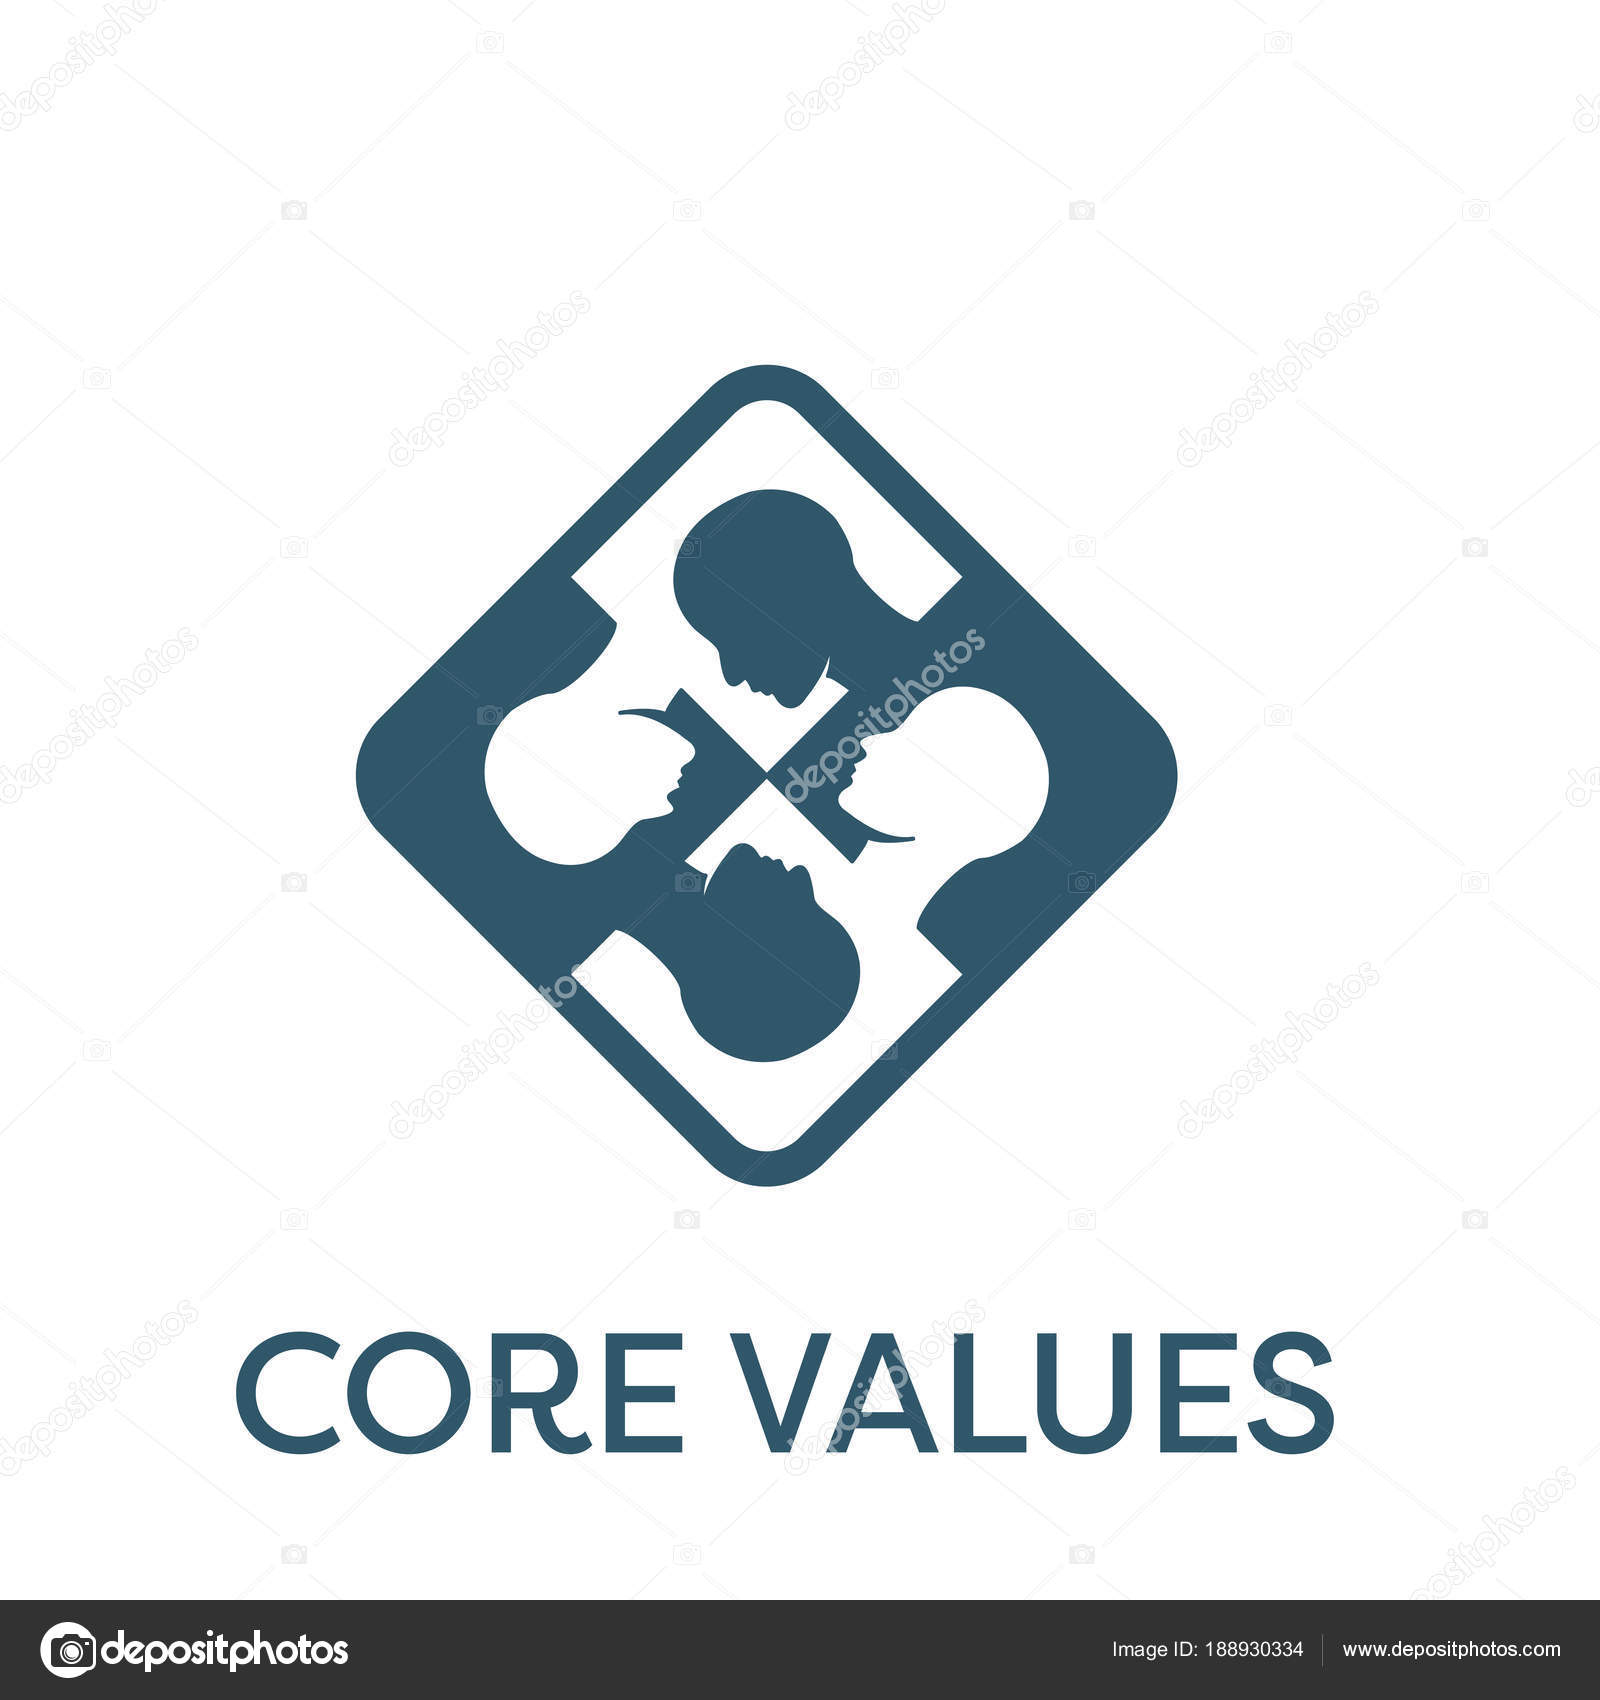 Core Values Solid Icon w person & collaborating / thinking ideas ...